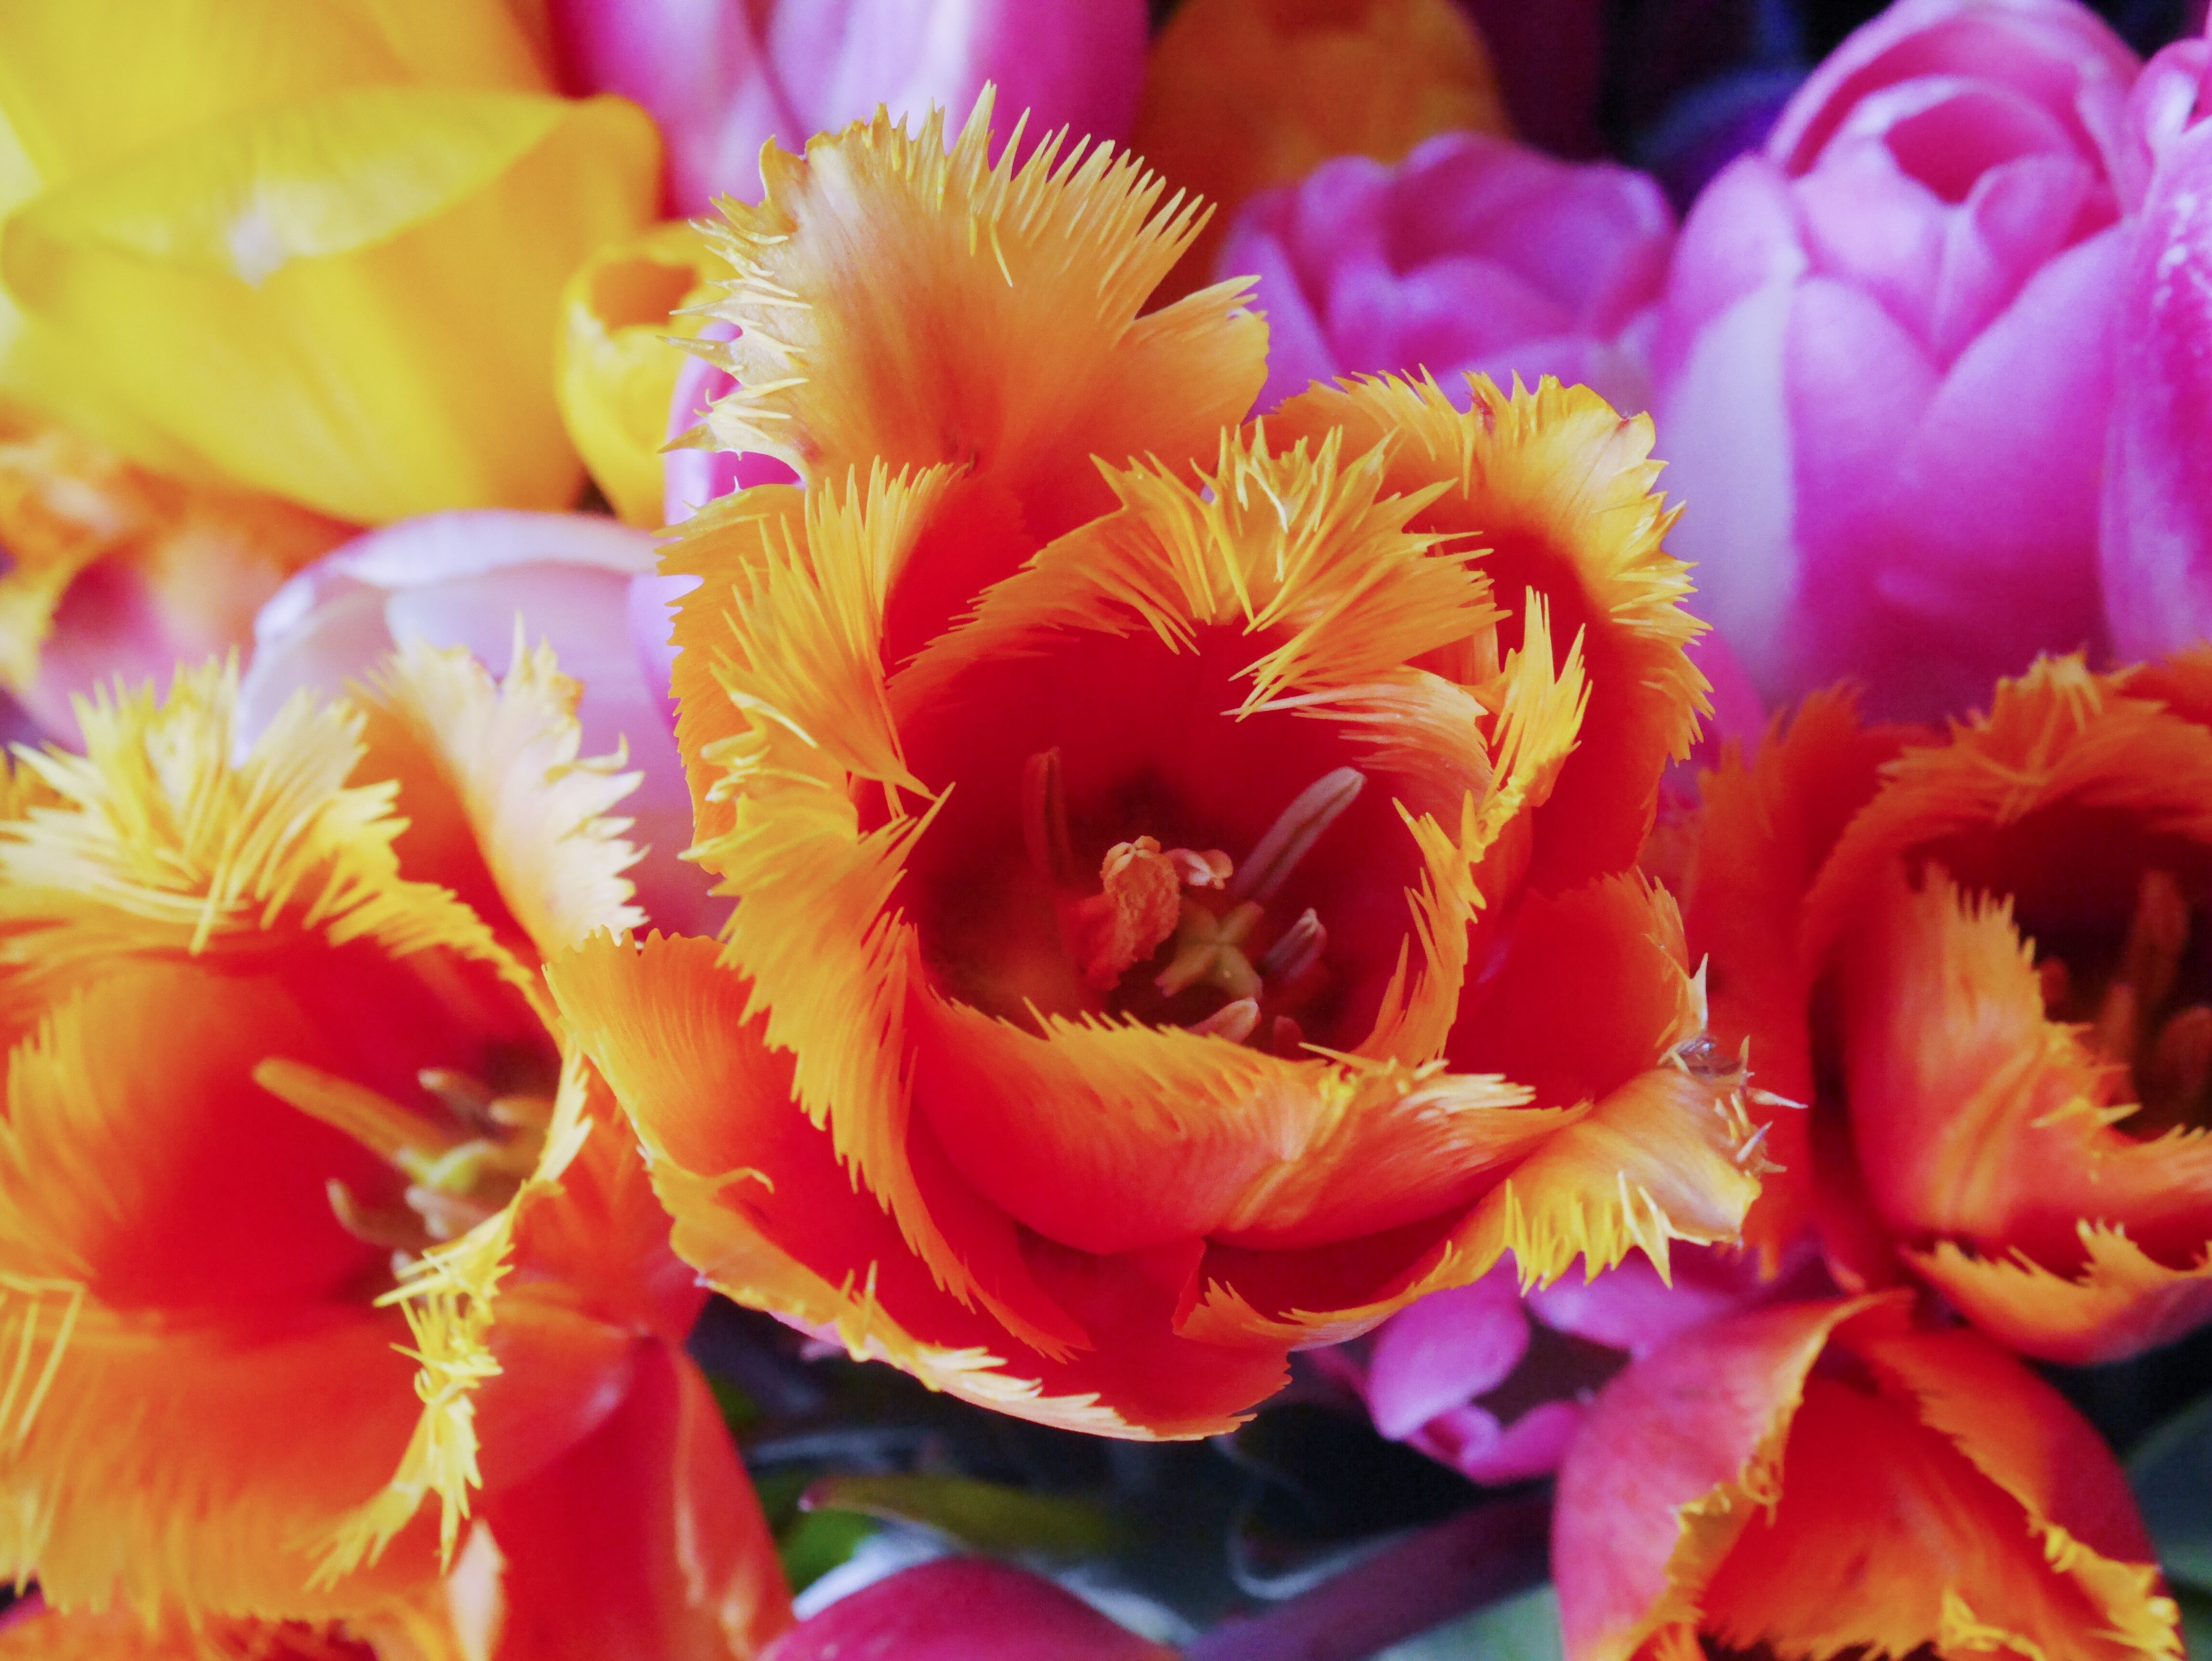 red-and-orange petaled flowers near purple and yellow flowers